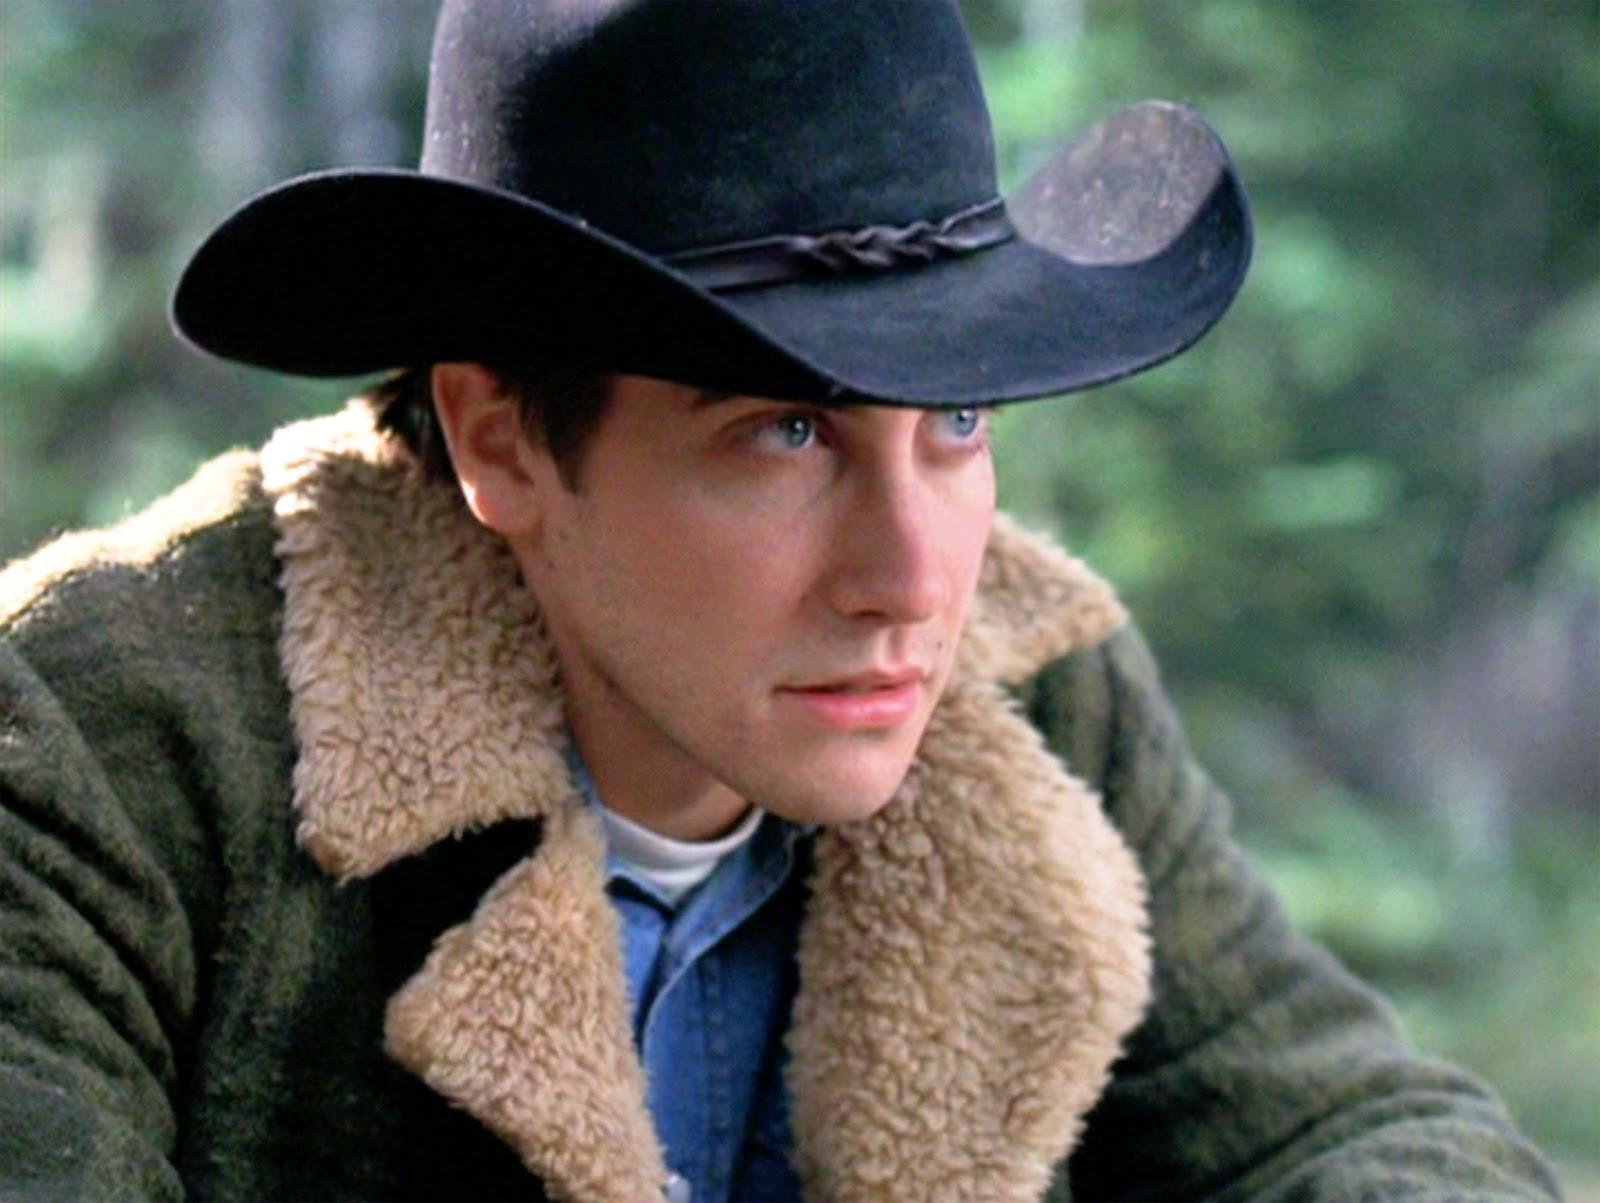 reviewing the film version of brokeback mountain film studies essay The story and the film reading brokeback mountain essays on  the film version of brokeback  story a study of nazism in feature films essay i will.